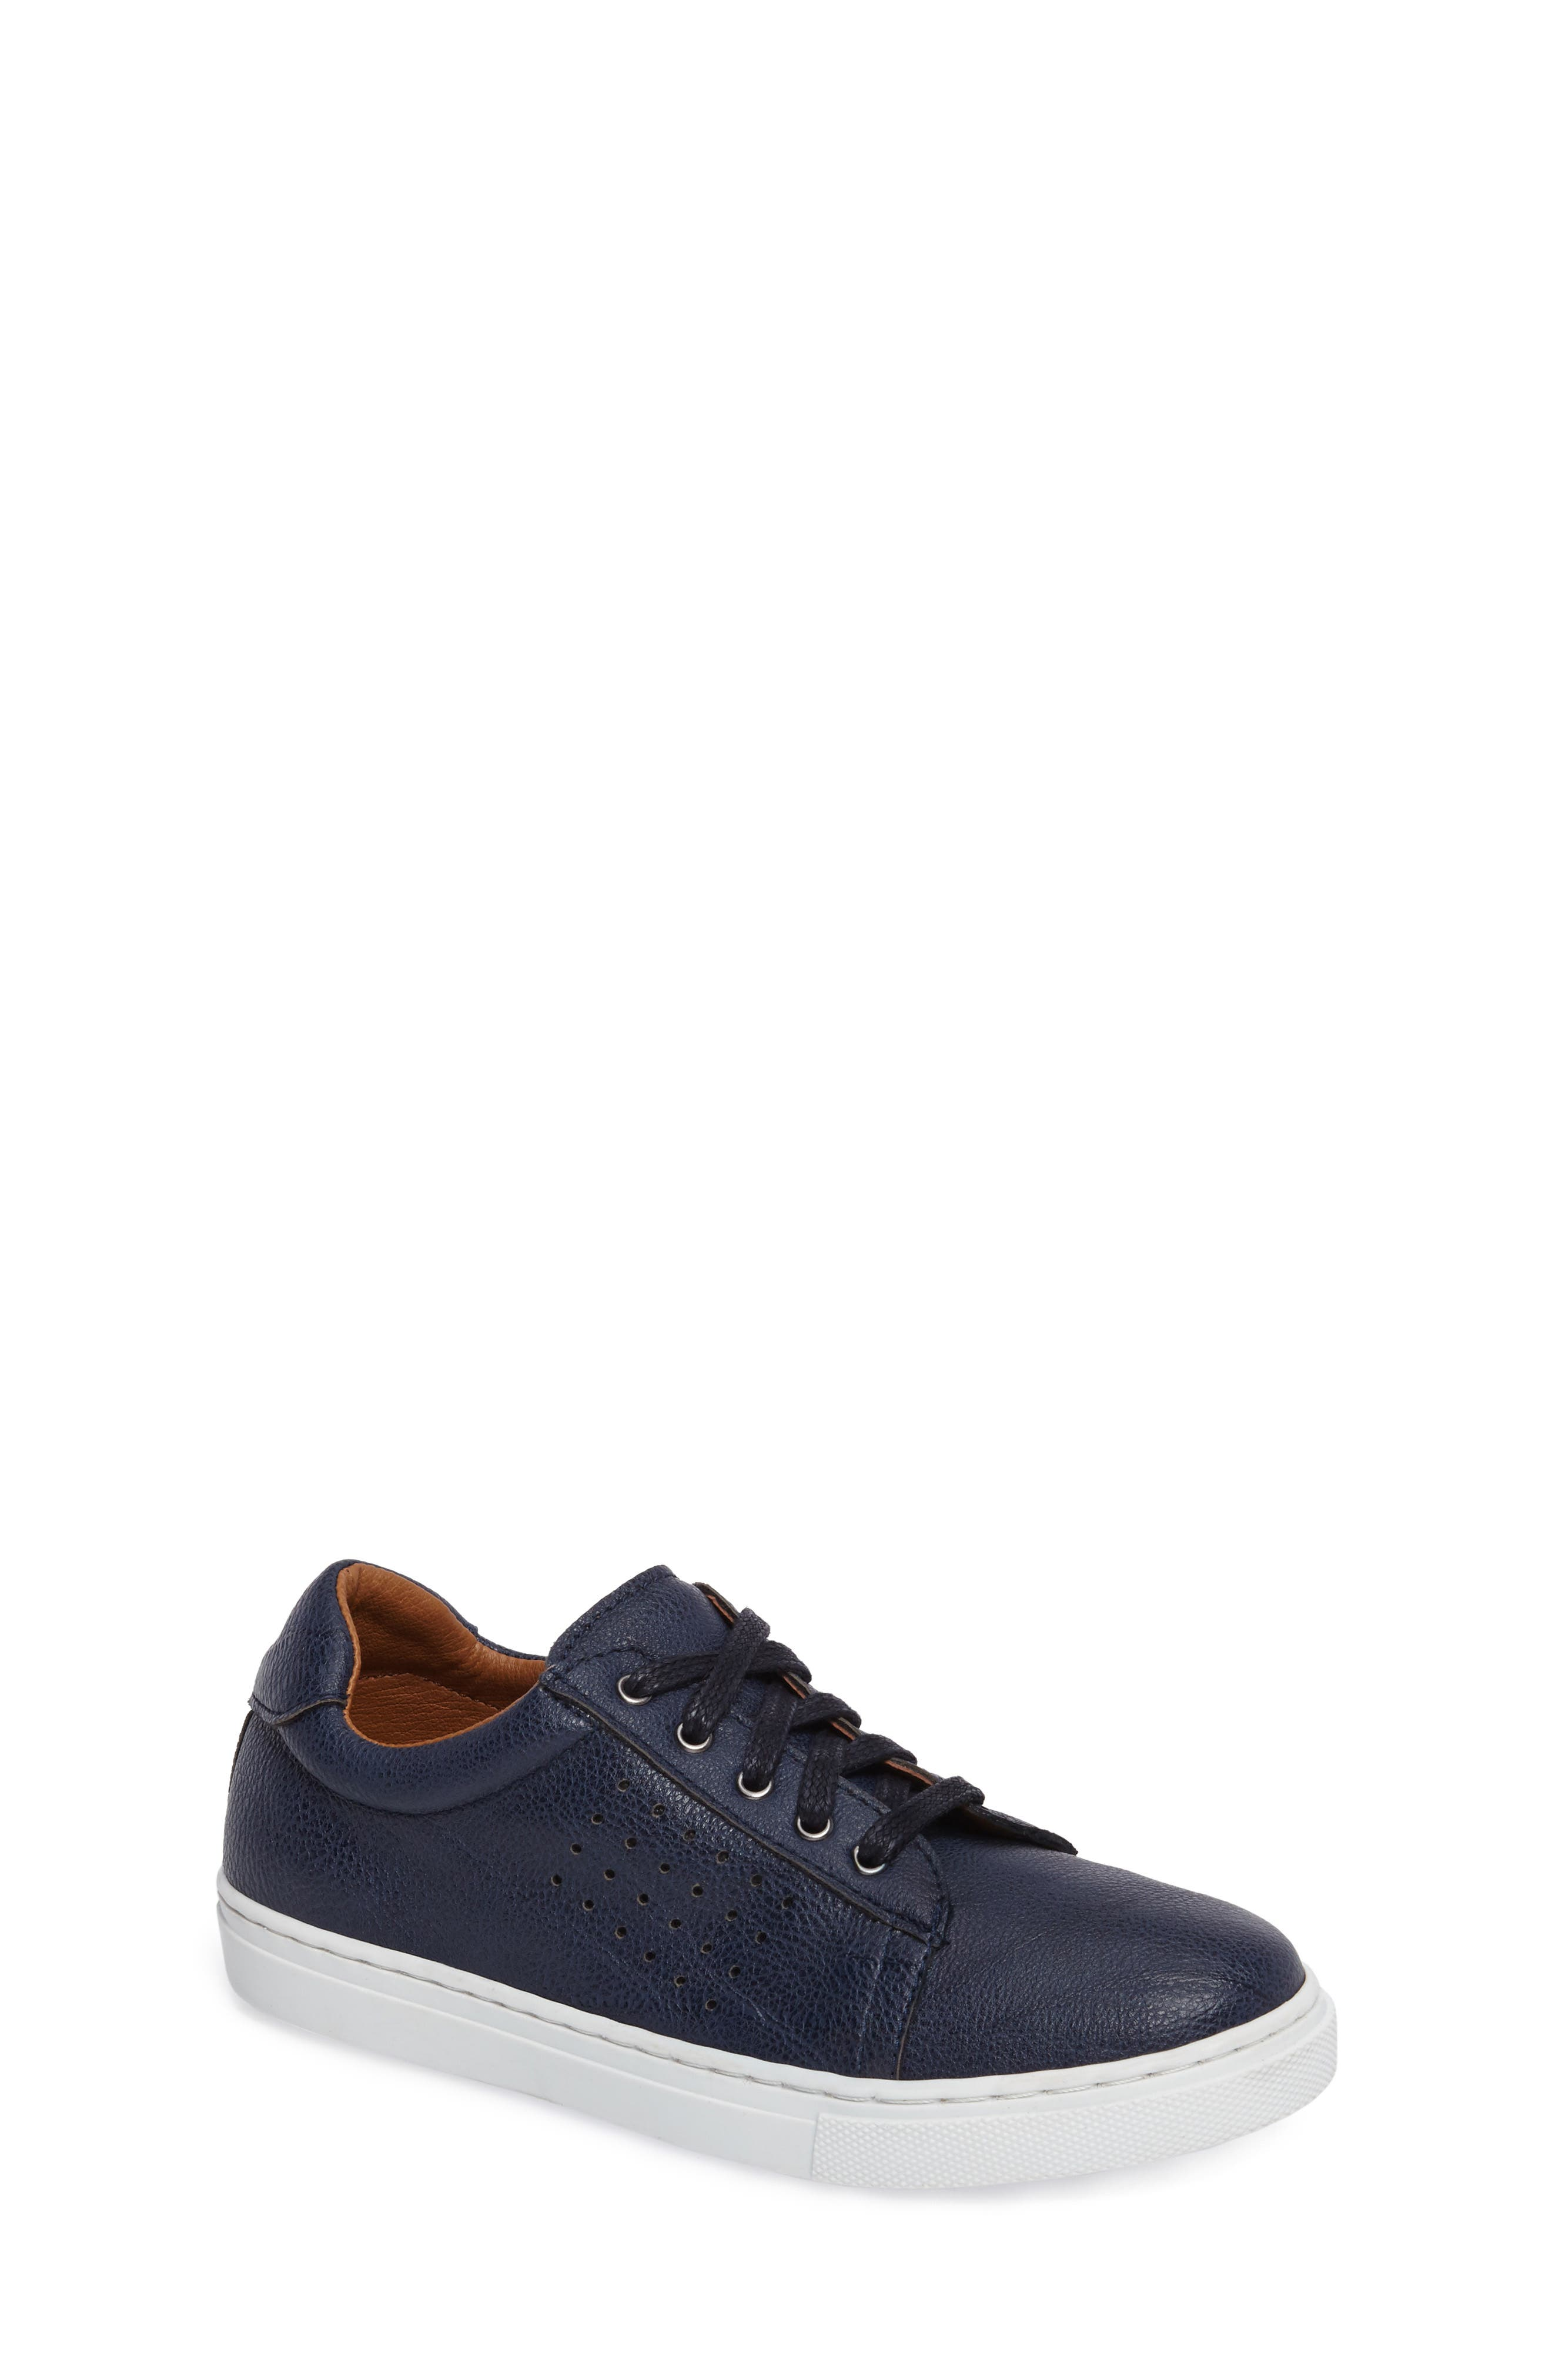 Grafte Perforated Sneaker,                             Main thumbnail 1, color,                             Navy